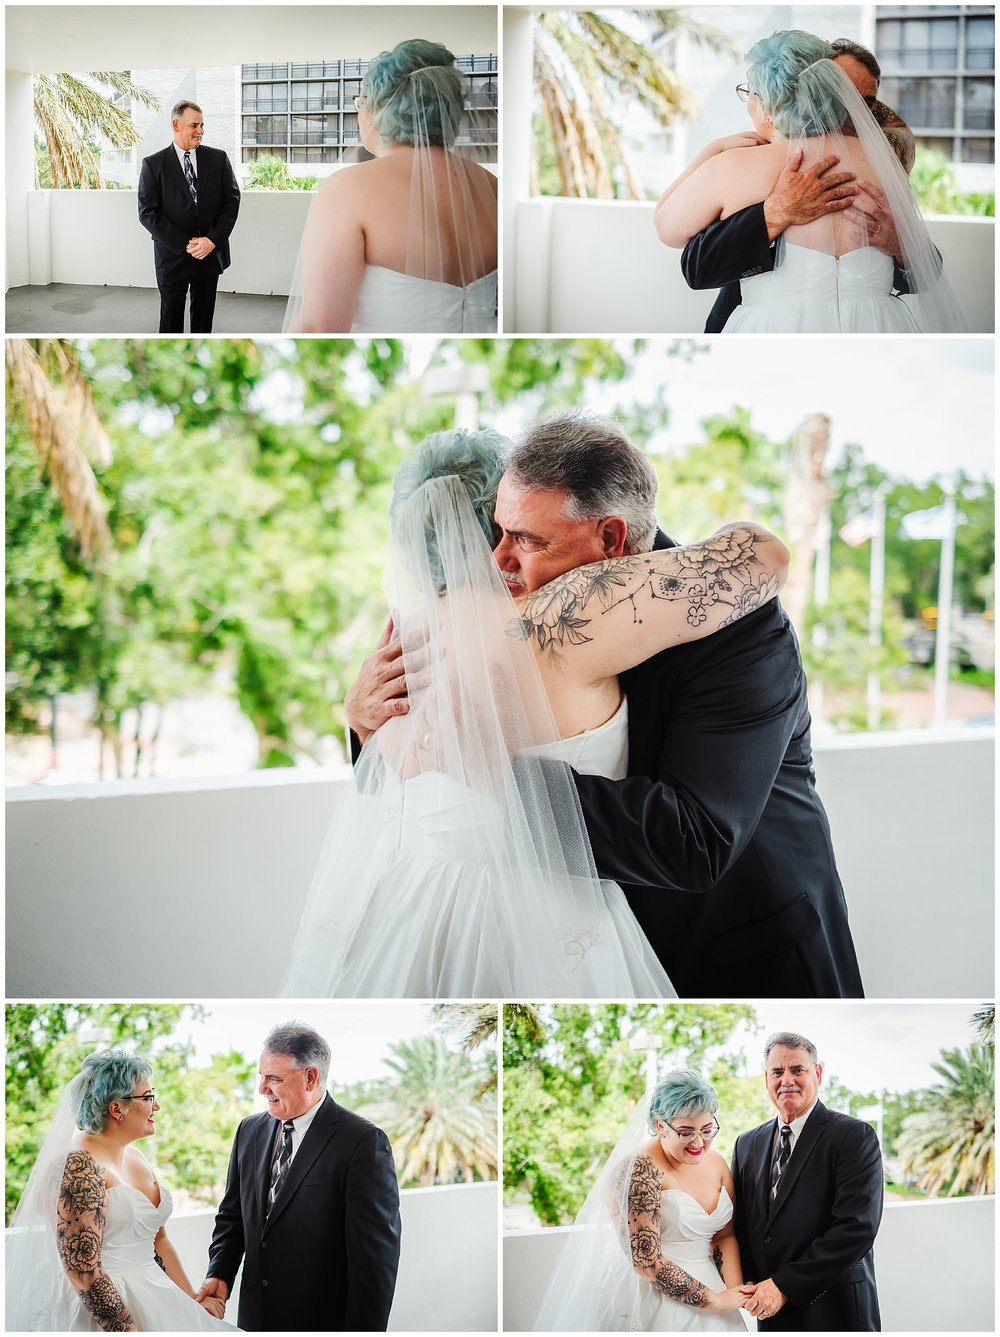 colorful-disney-elopement-micro-wedding-maitland-arts-center-orlando-photographer_0128.jpg